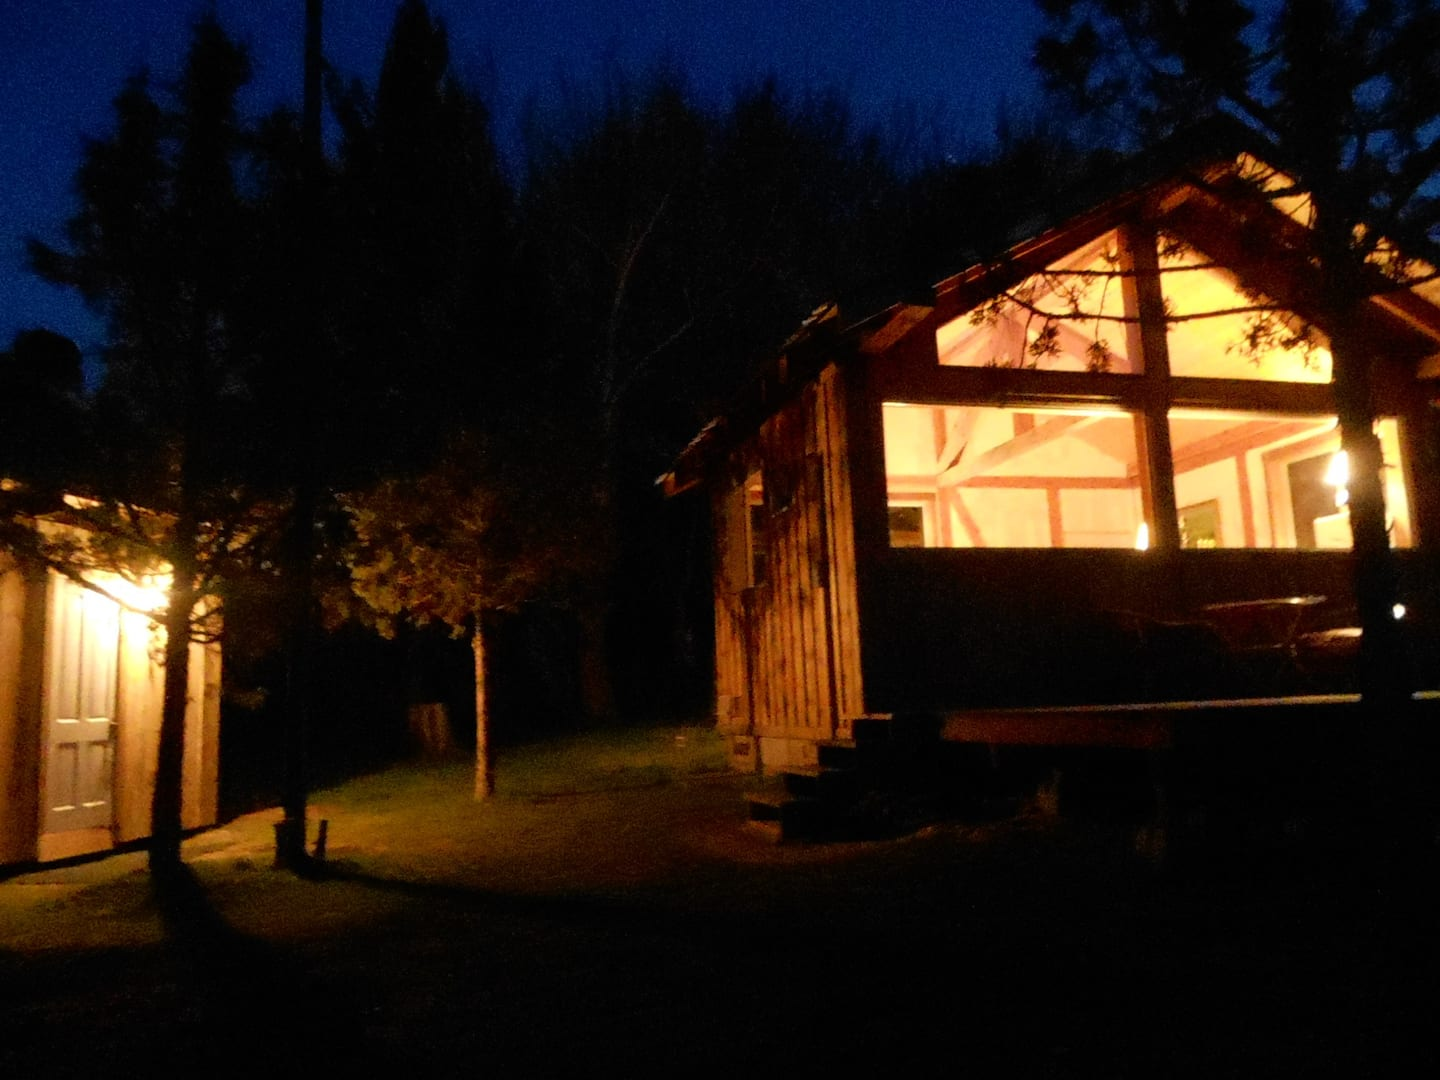 Cabin at night with lights on inside